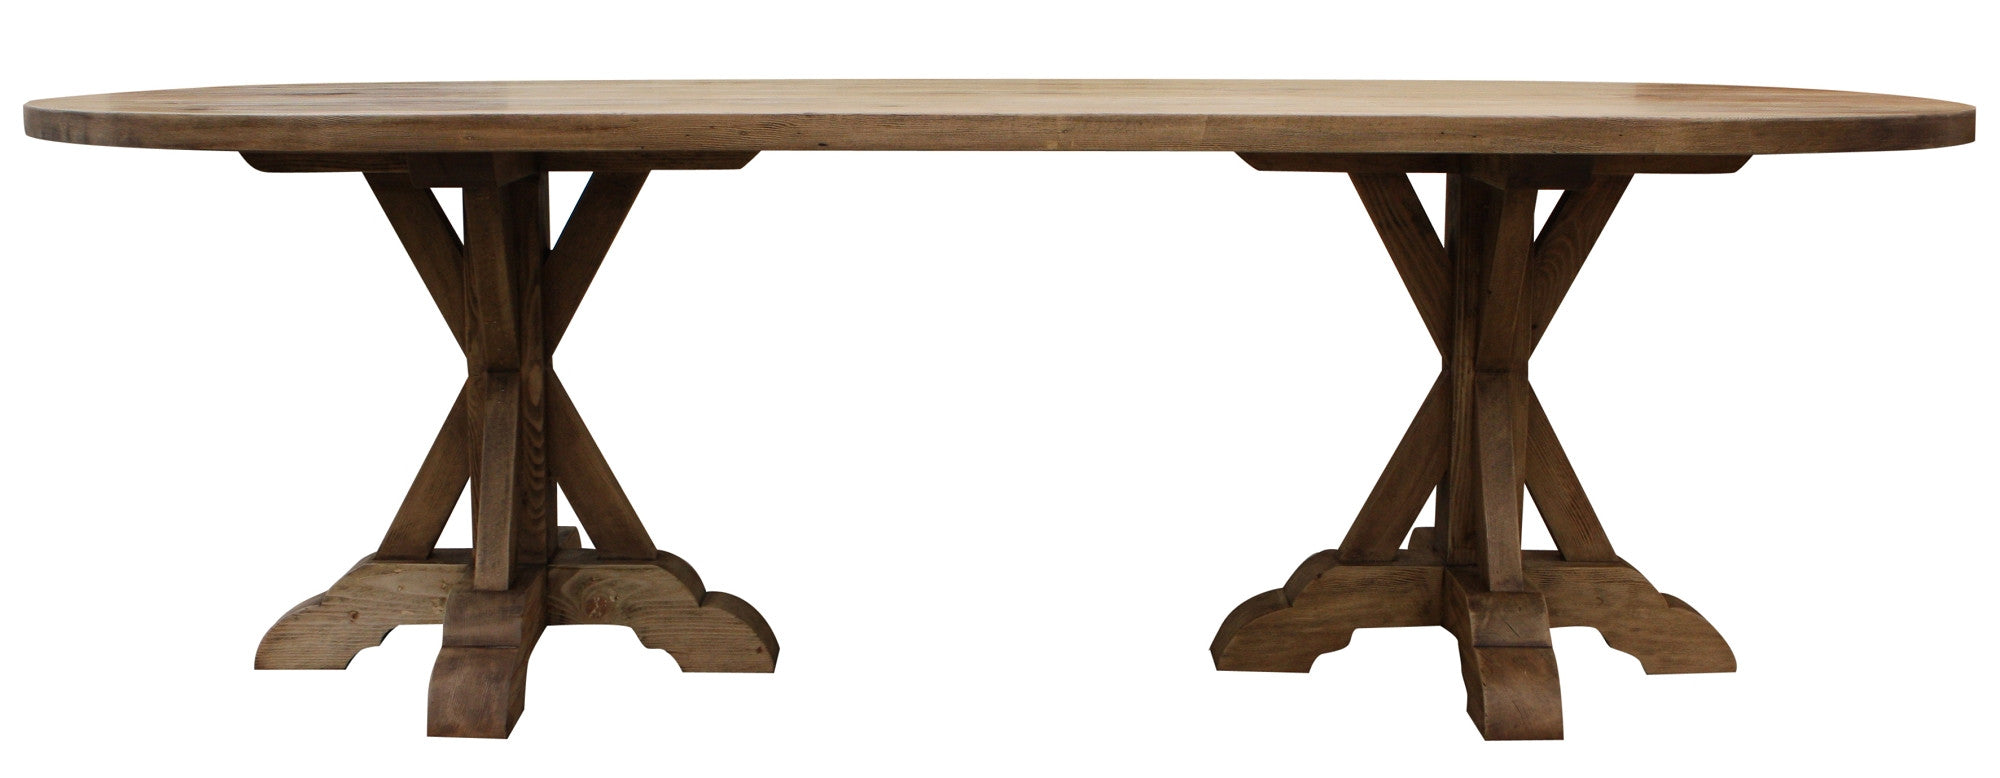 Reclaimed wood double pedestal dining table mortise tenon Pedestal dining table